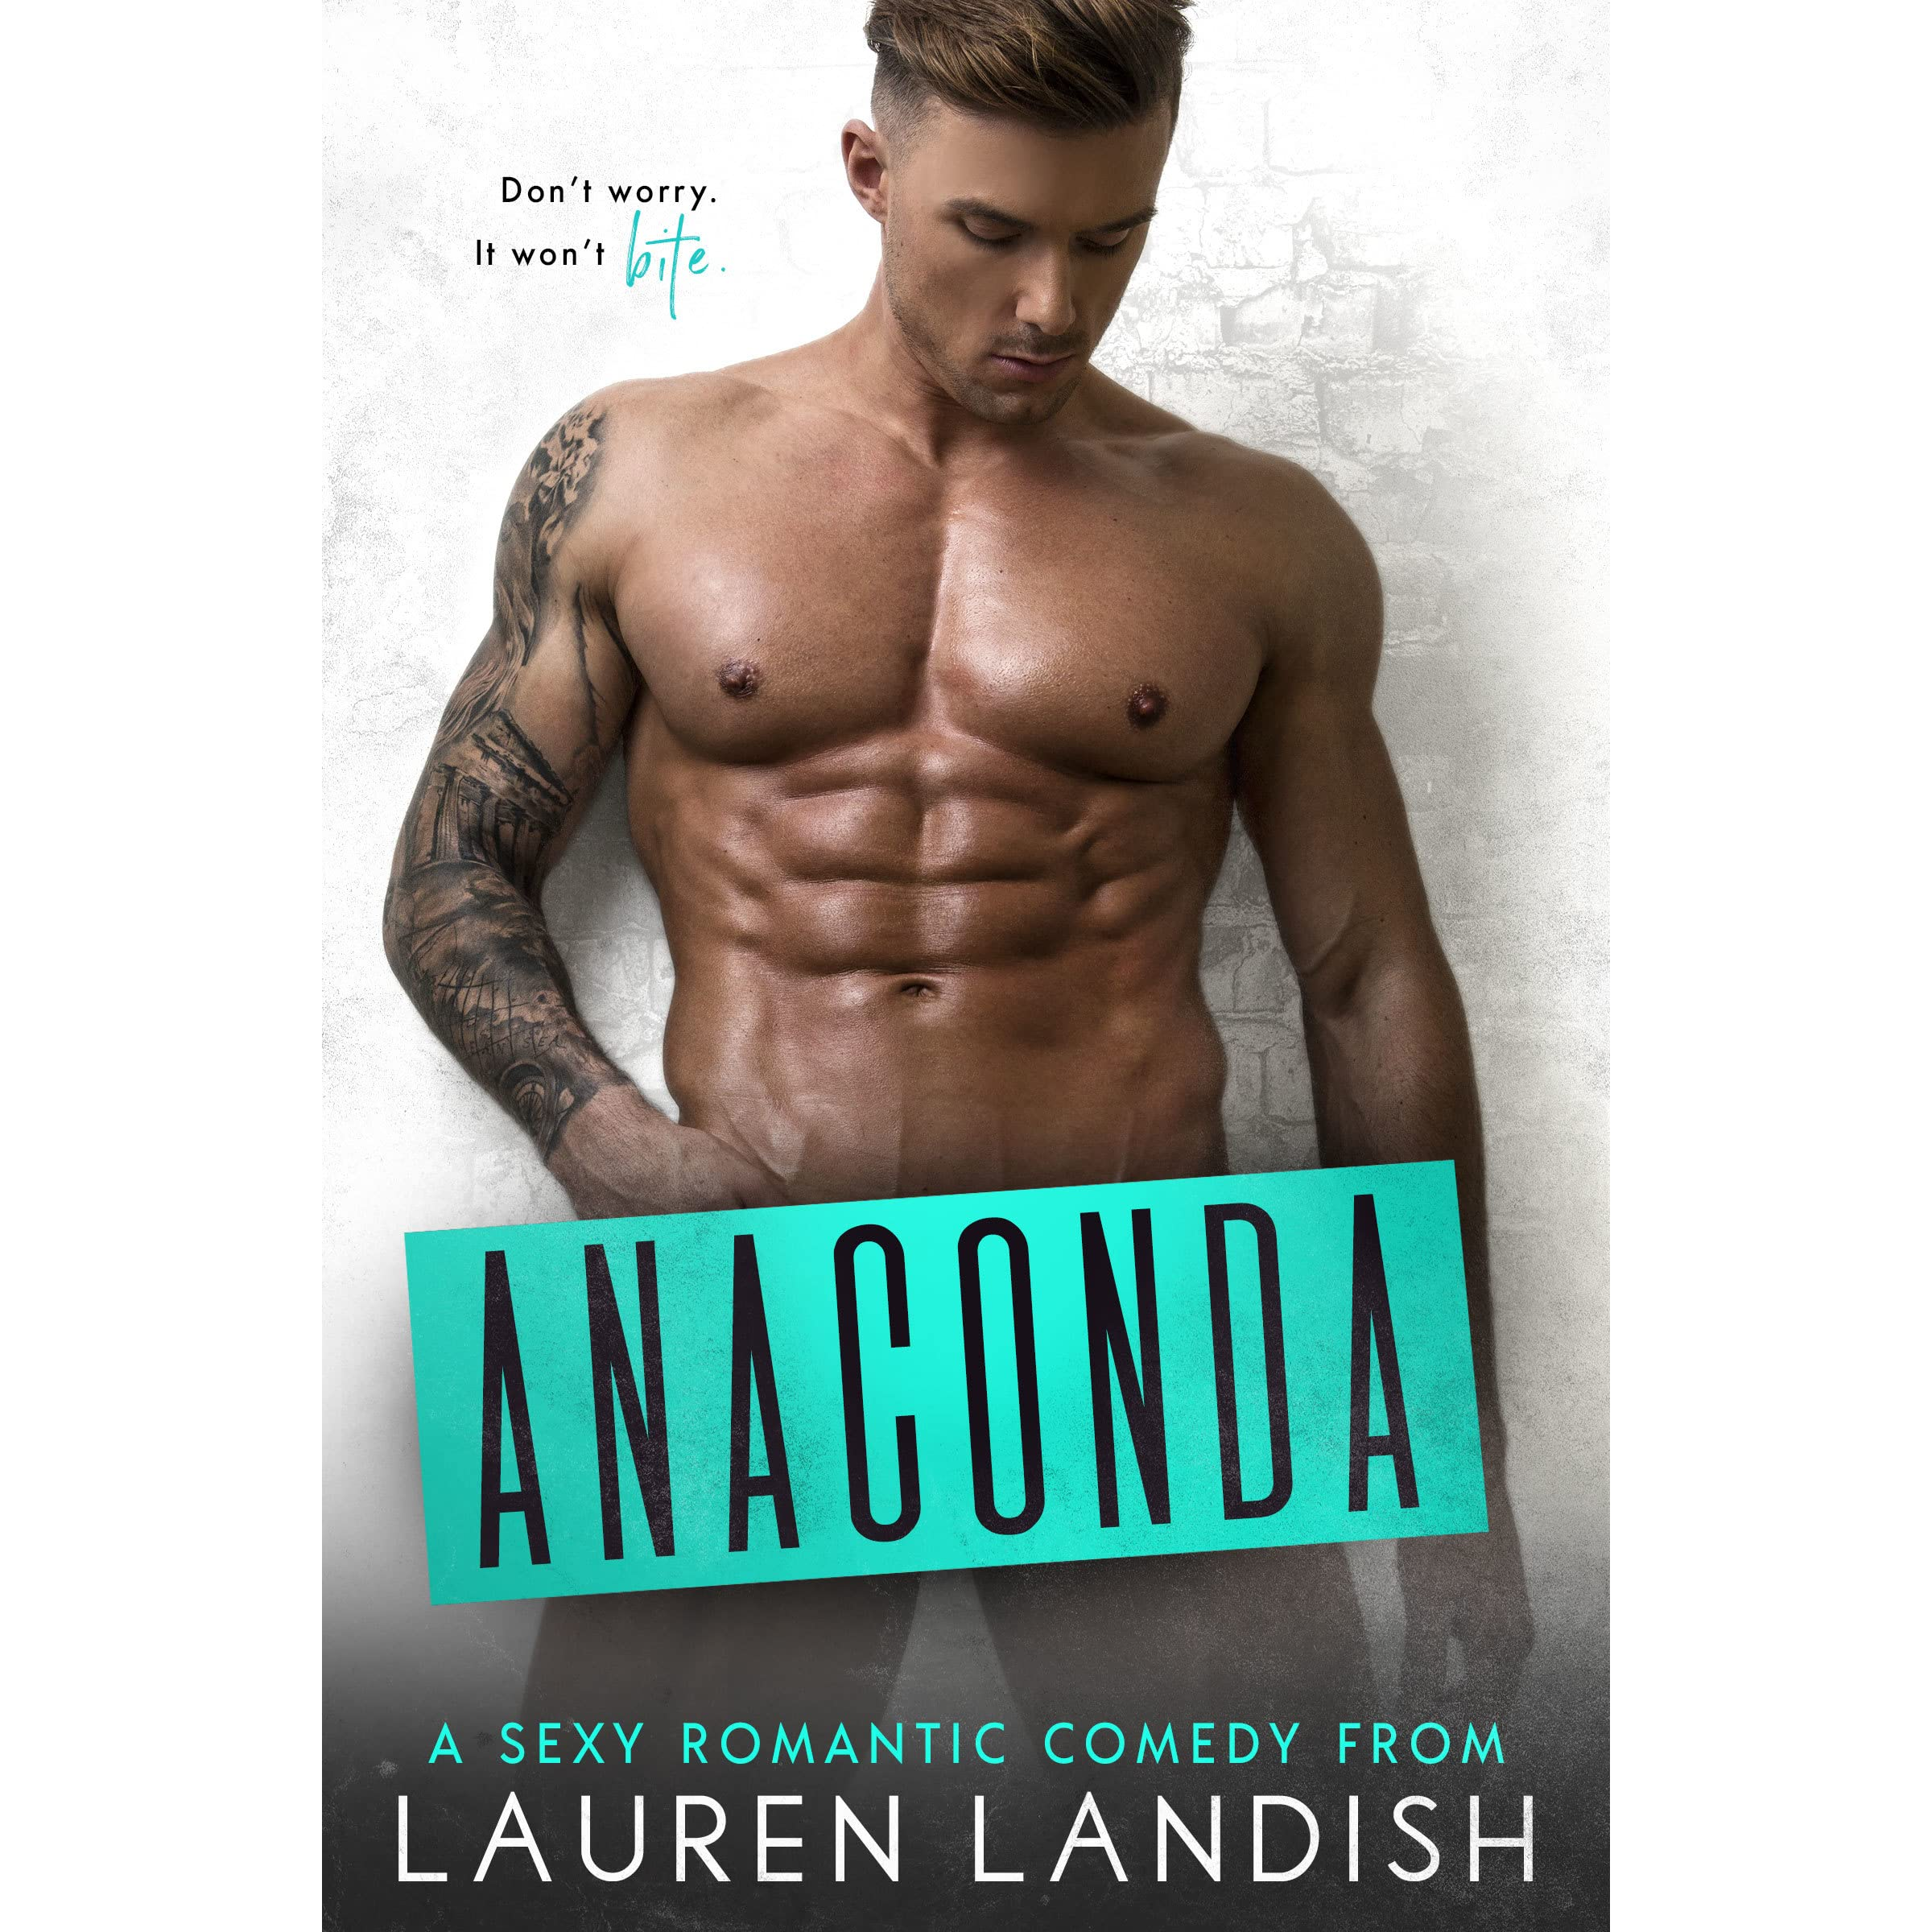 Anaconda Movie Hot Scene anaconda (irresistible bachelors #1)lauren landish